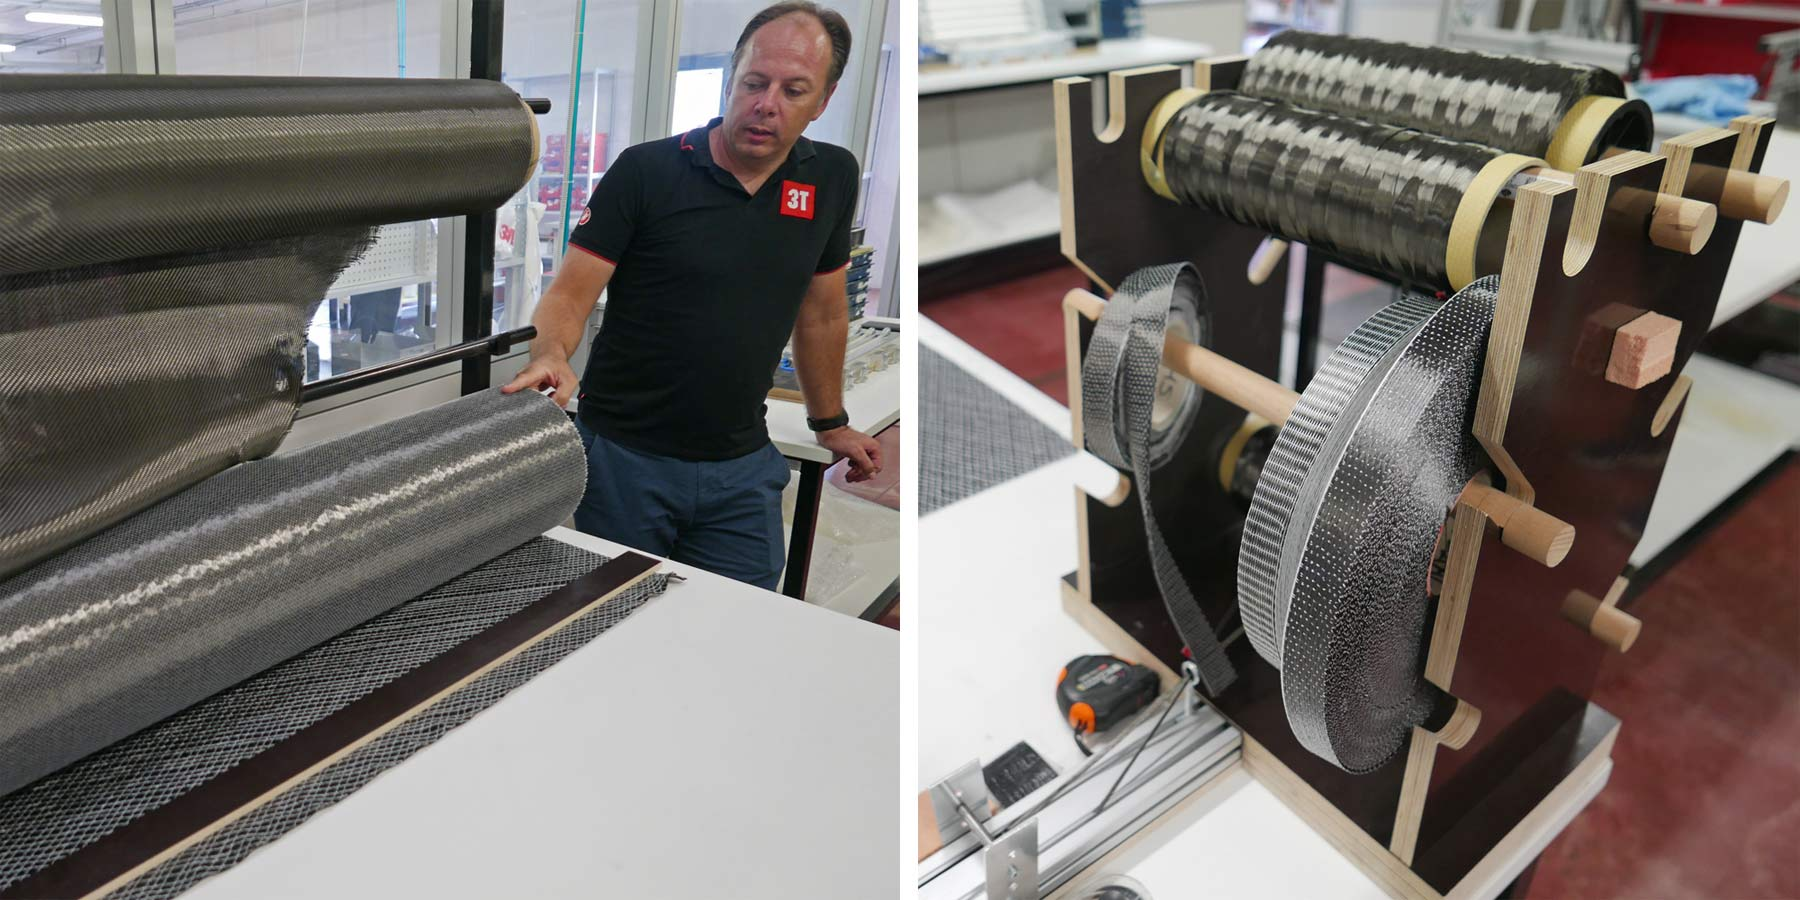 Inside 3T Cycling Factory Tour, How 3T Torno carbon cranks are made by hand, 100% made-in-Italy